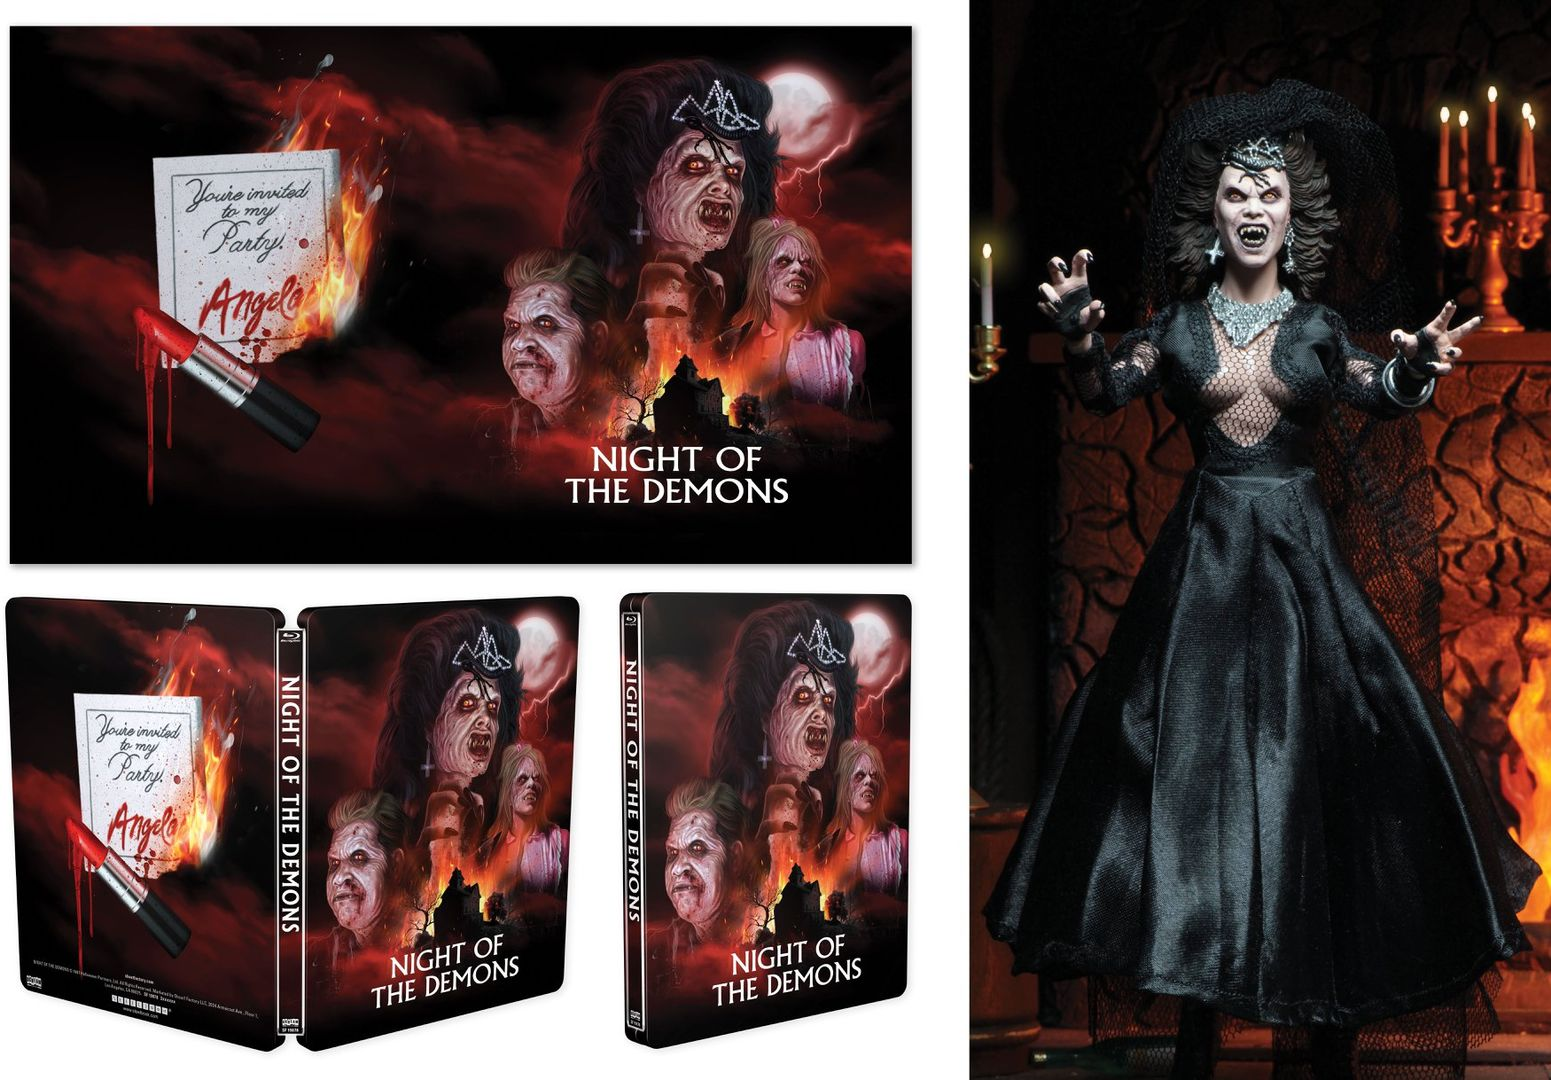 Amelia Kinkade Night Of The Demons scream factory & neca deluxe 'night of the demons' steelbook